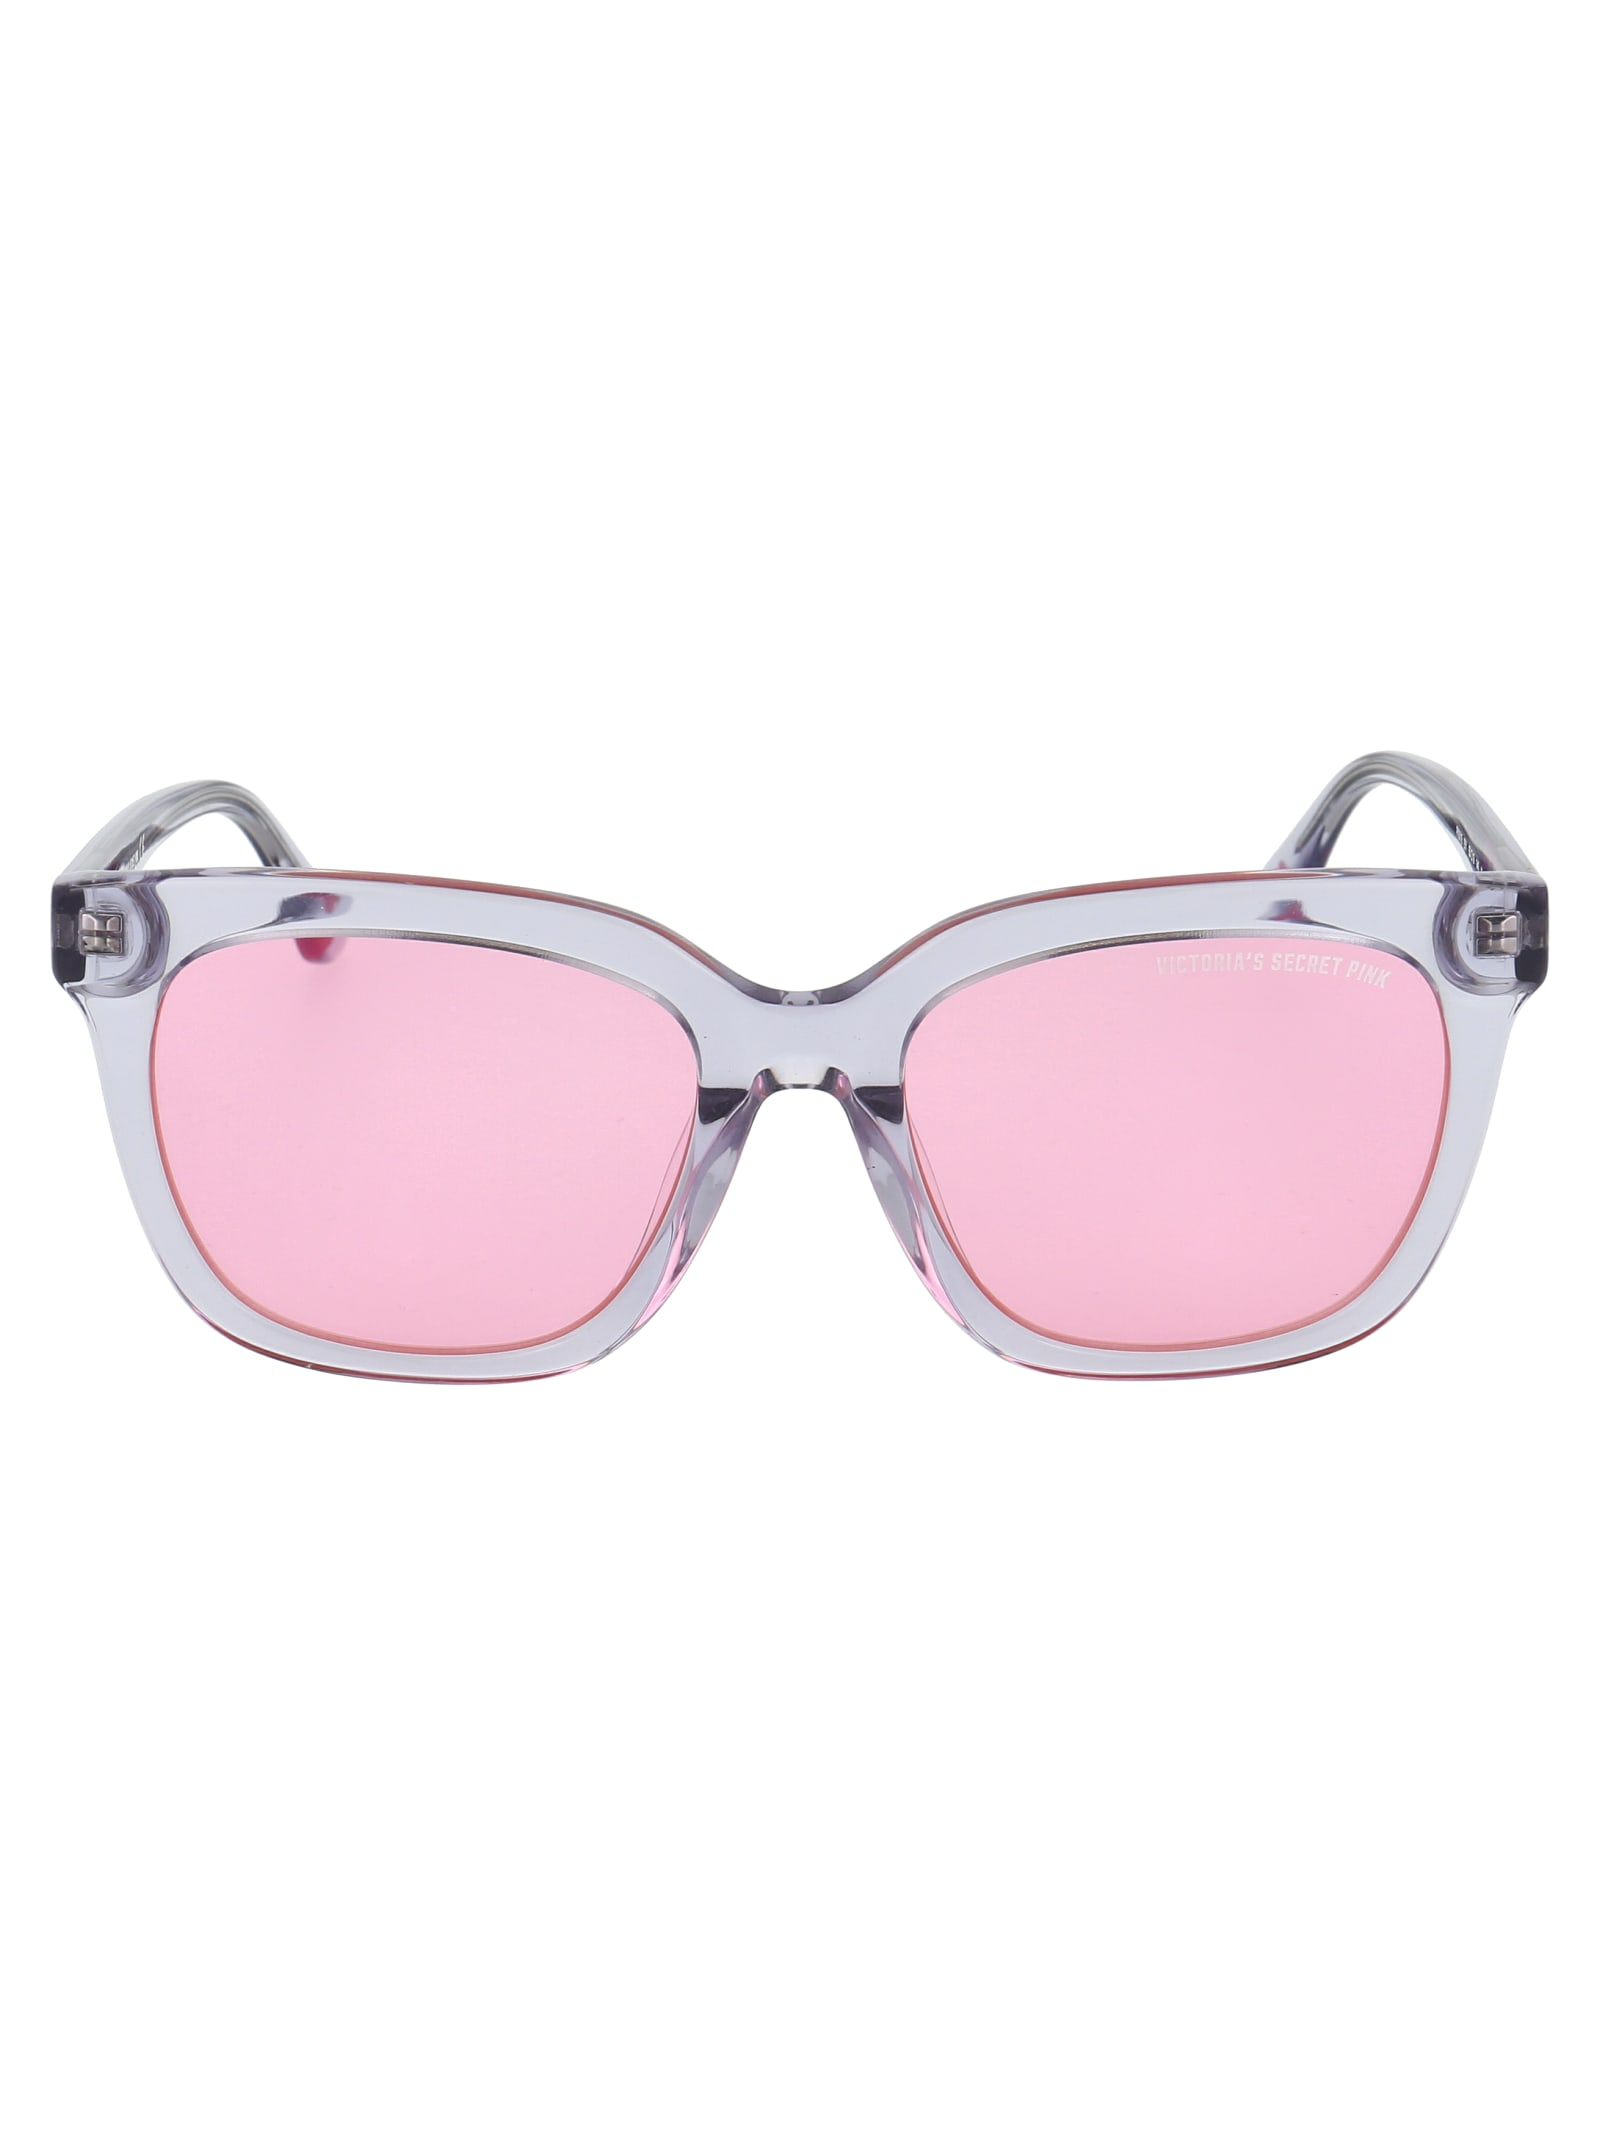 Victorias Secret Sunglasses